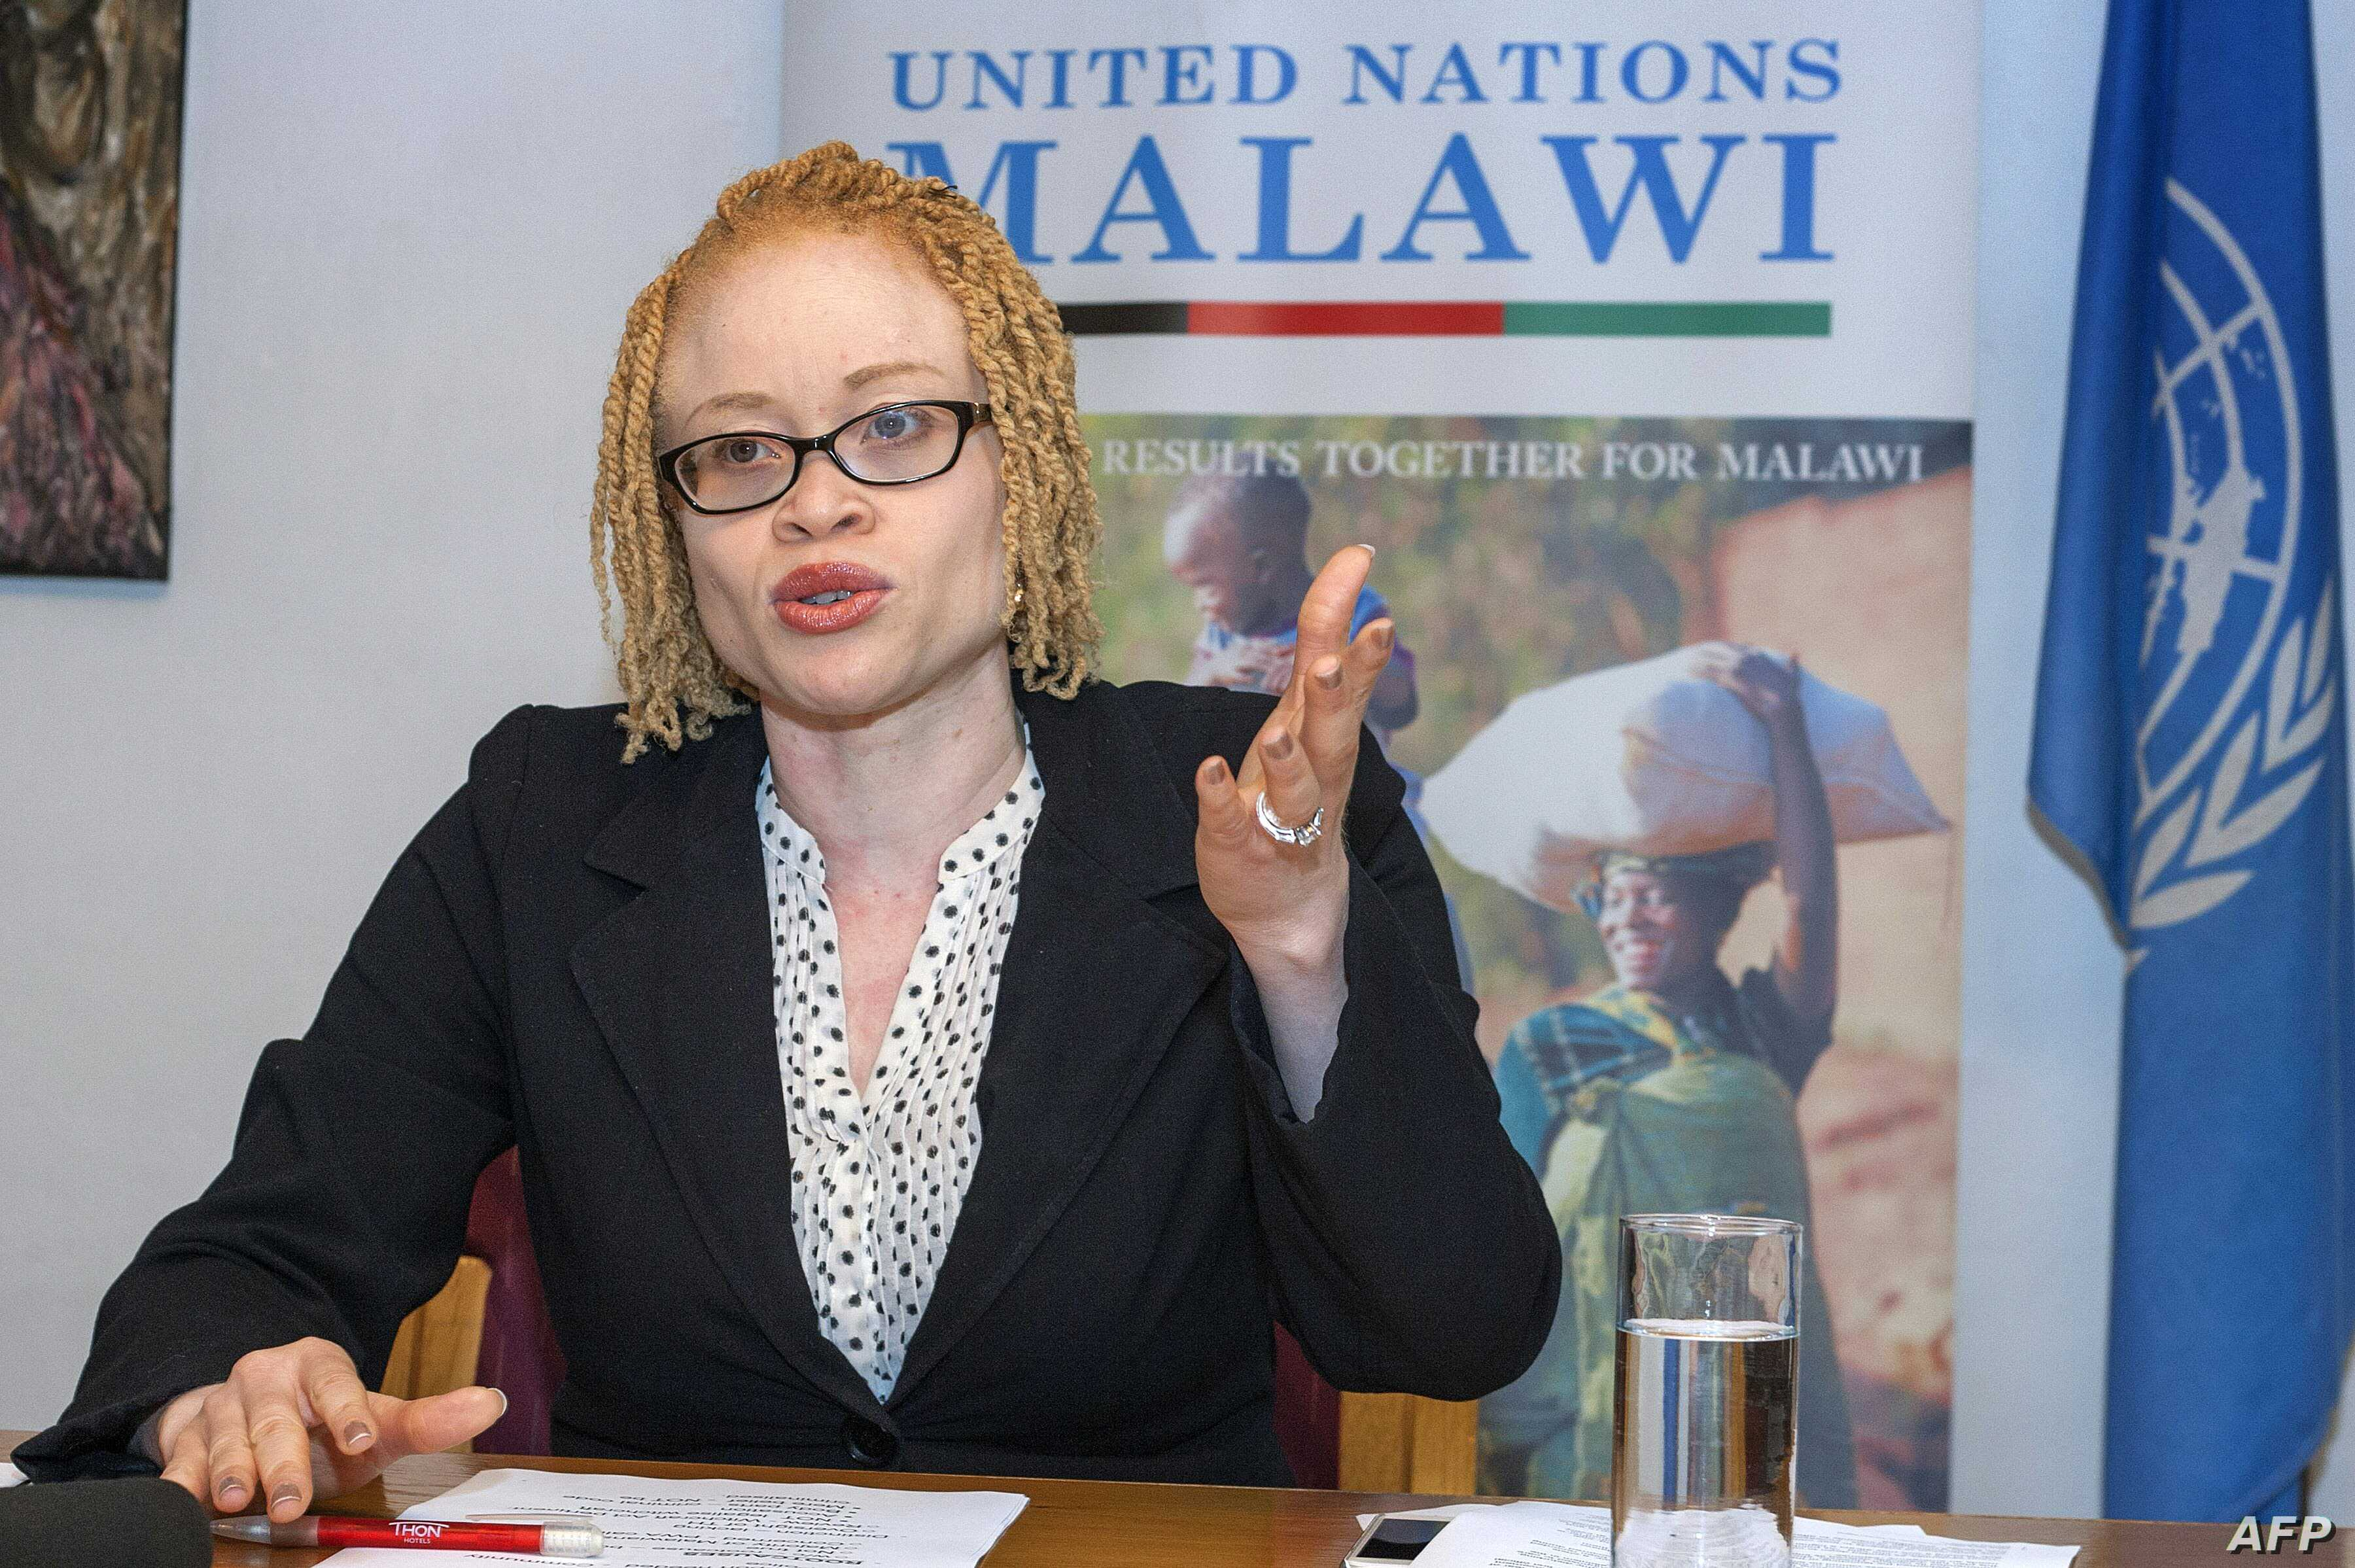 The U.N.'s independent expert on human rights and albinism, Ikponwosa Ero, addresses a news conference at the end of her official visit to Malawi on April 29, 2016.